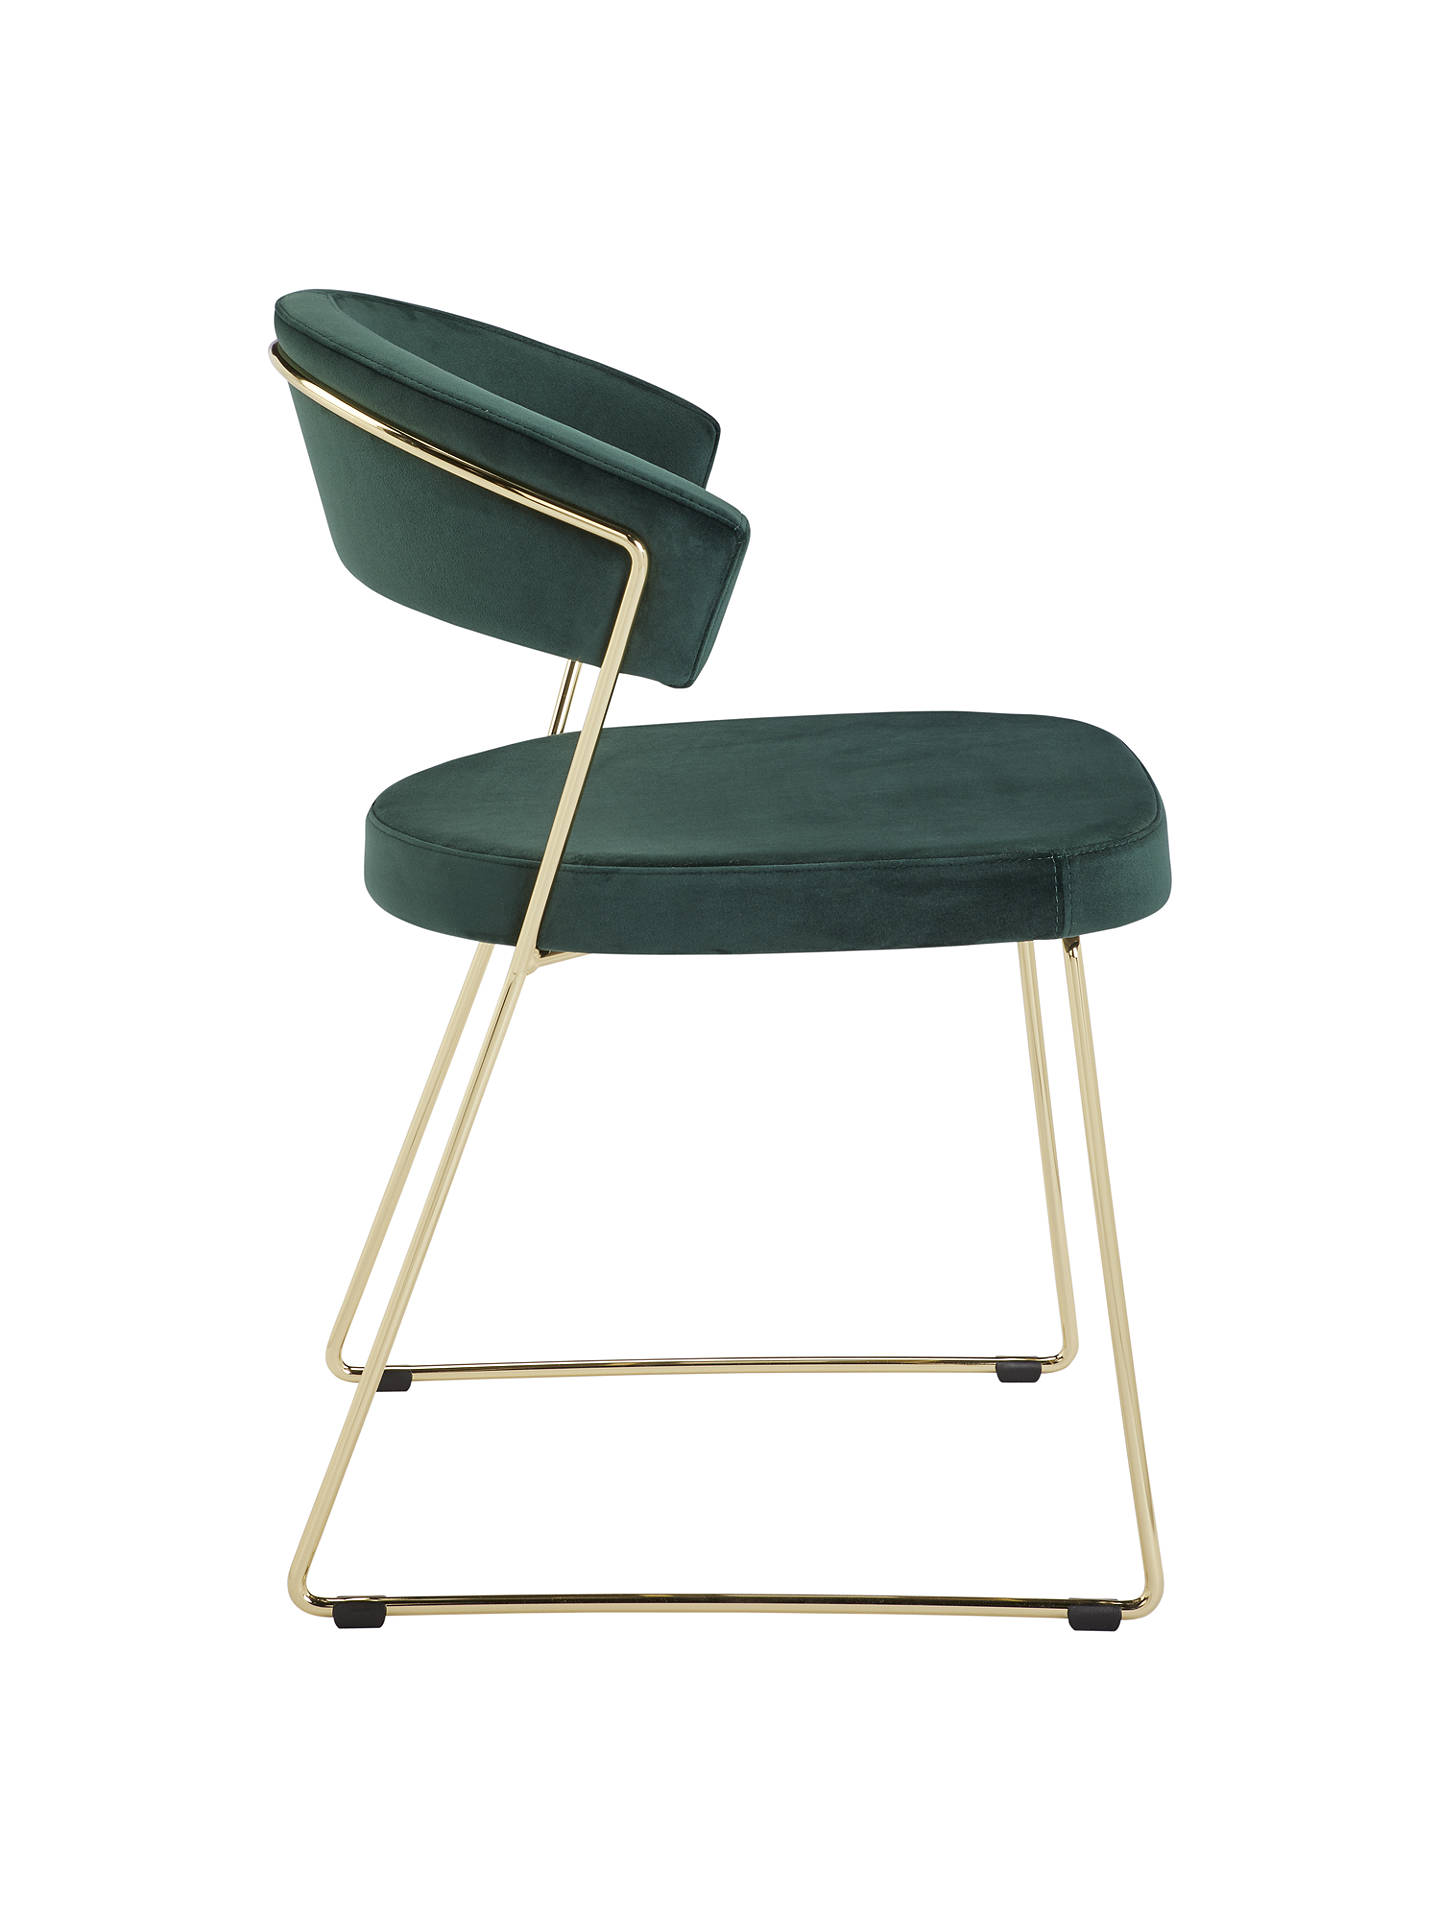 Green and Gold Dining Chair